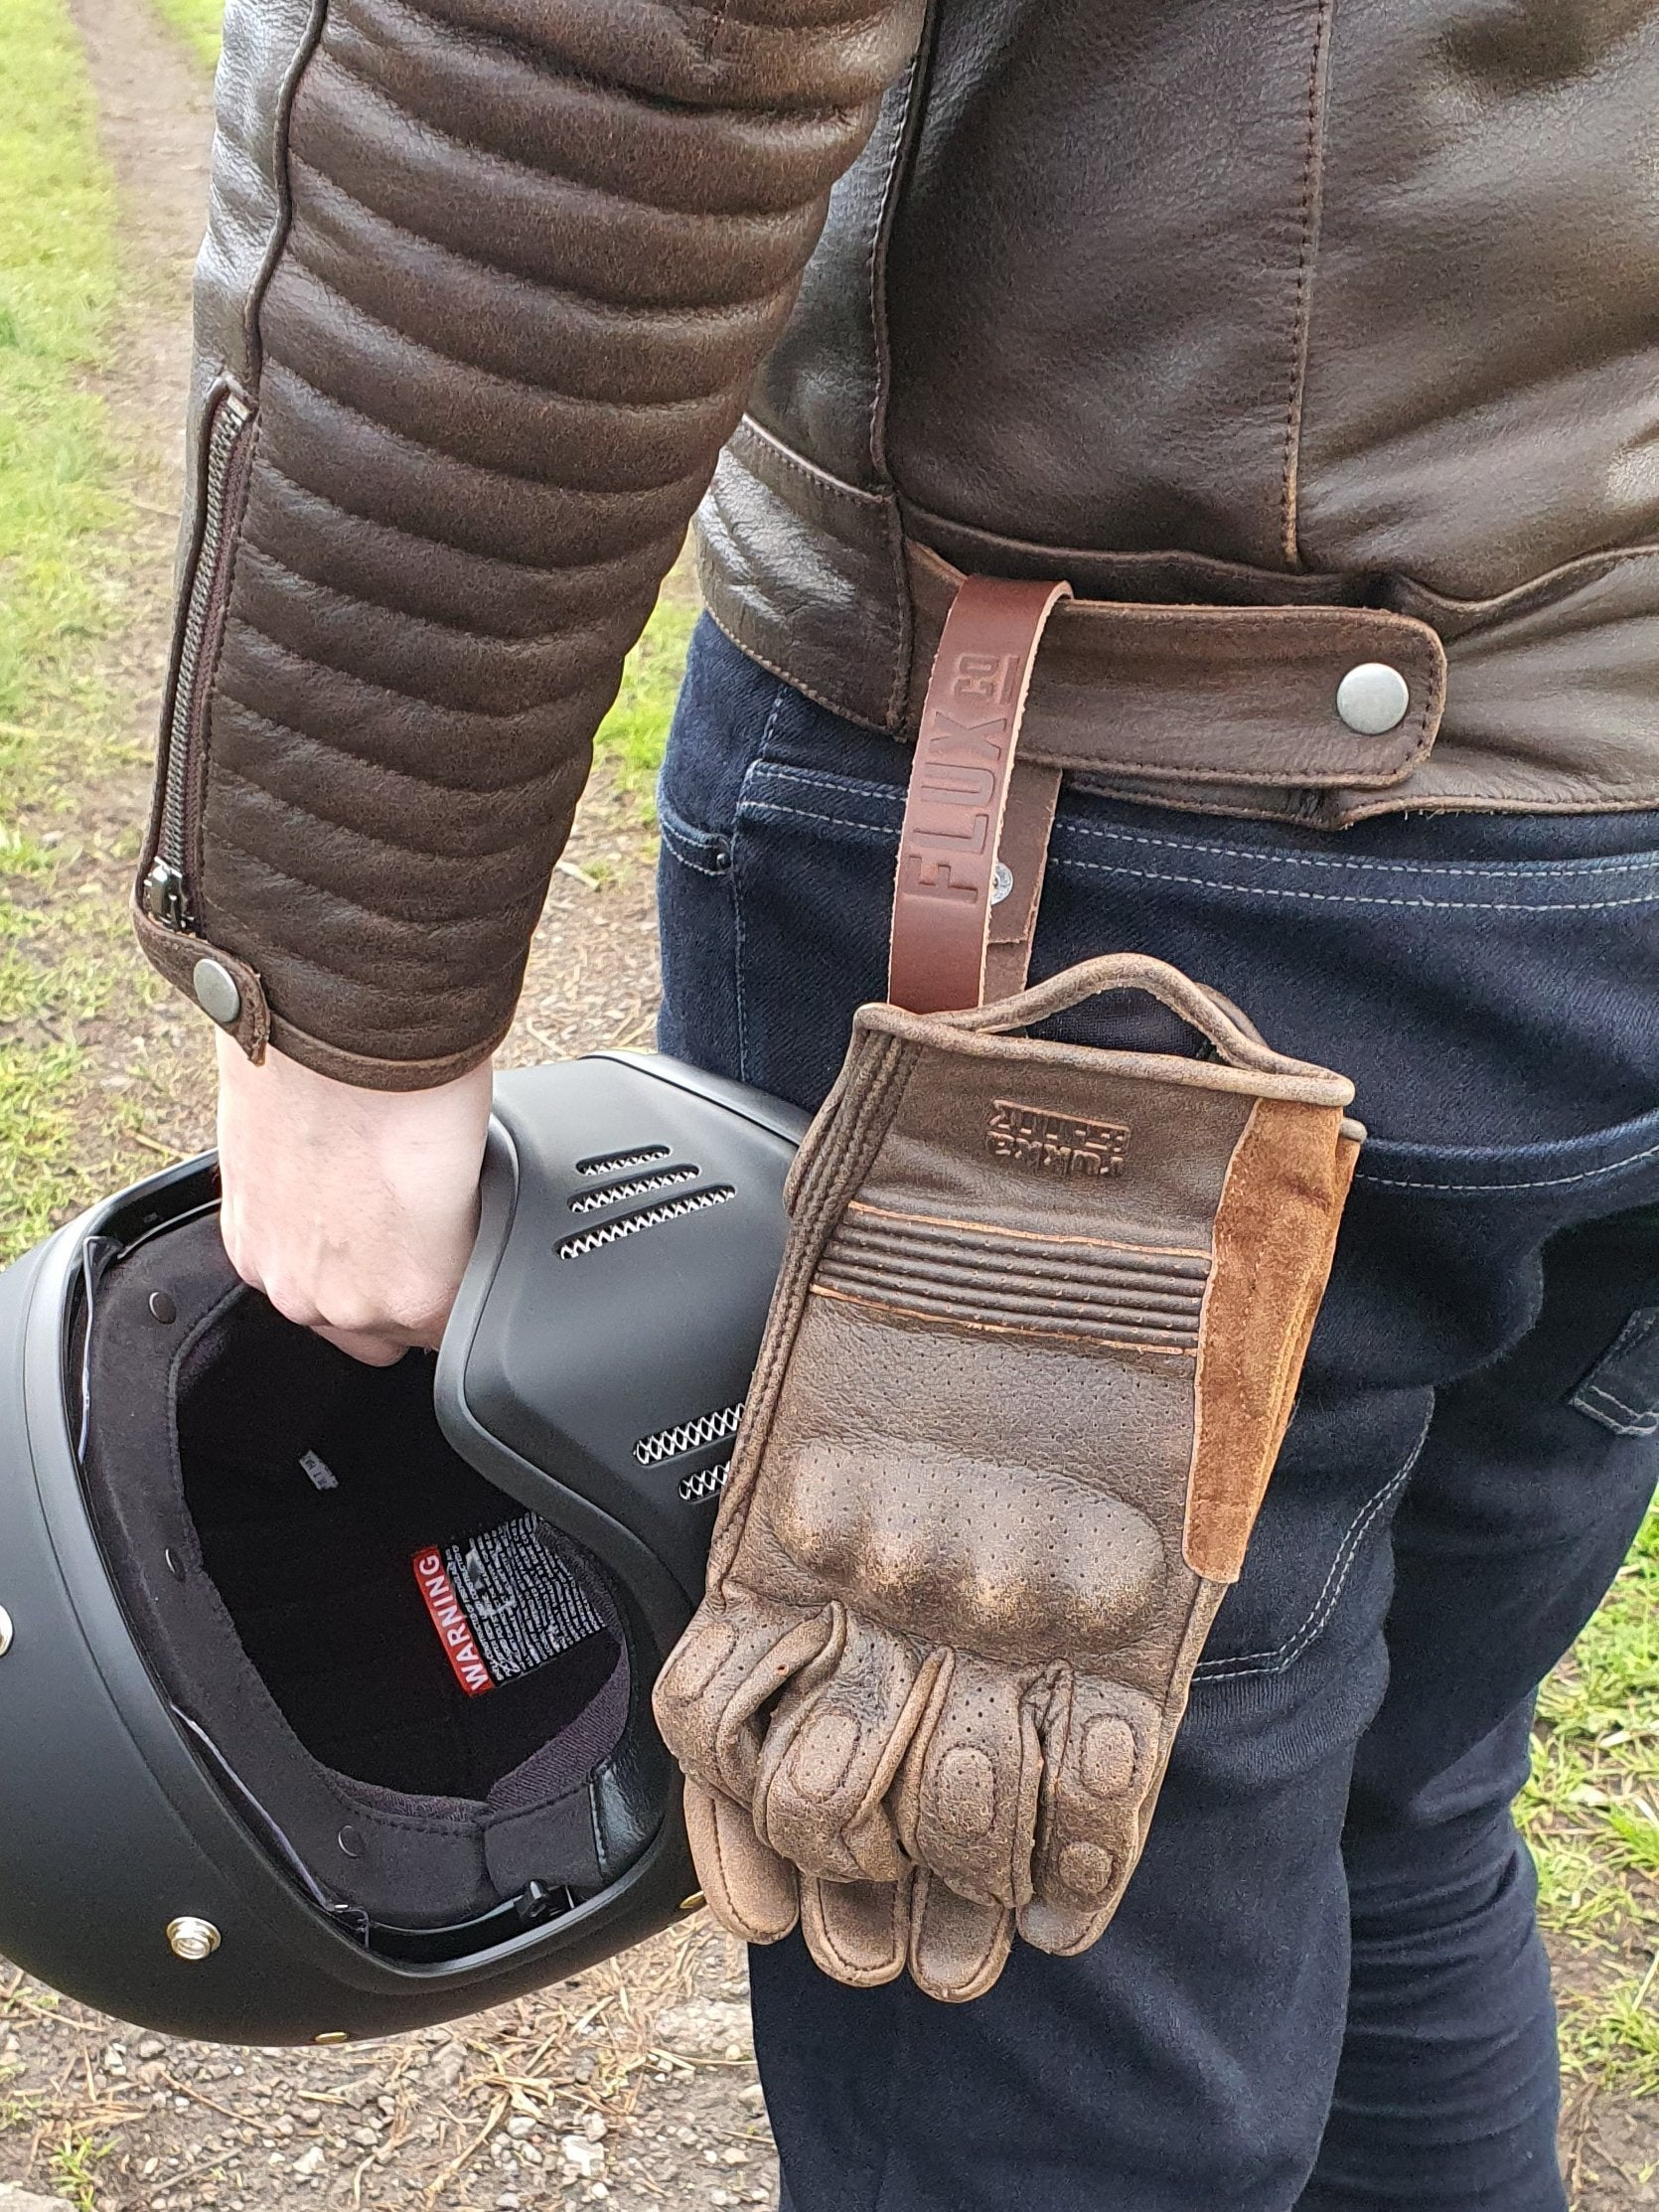 Flux Co. Holster in action 2